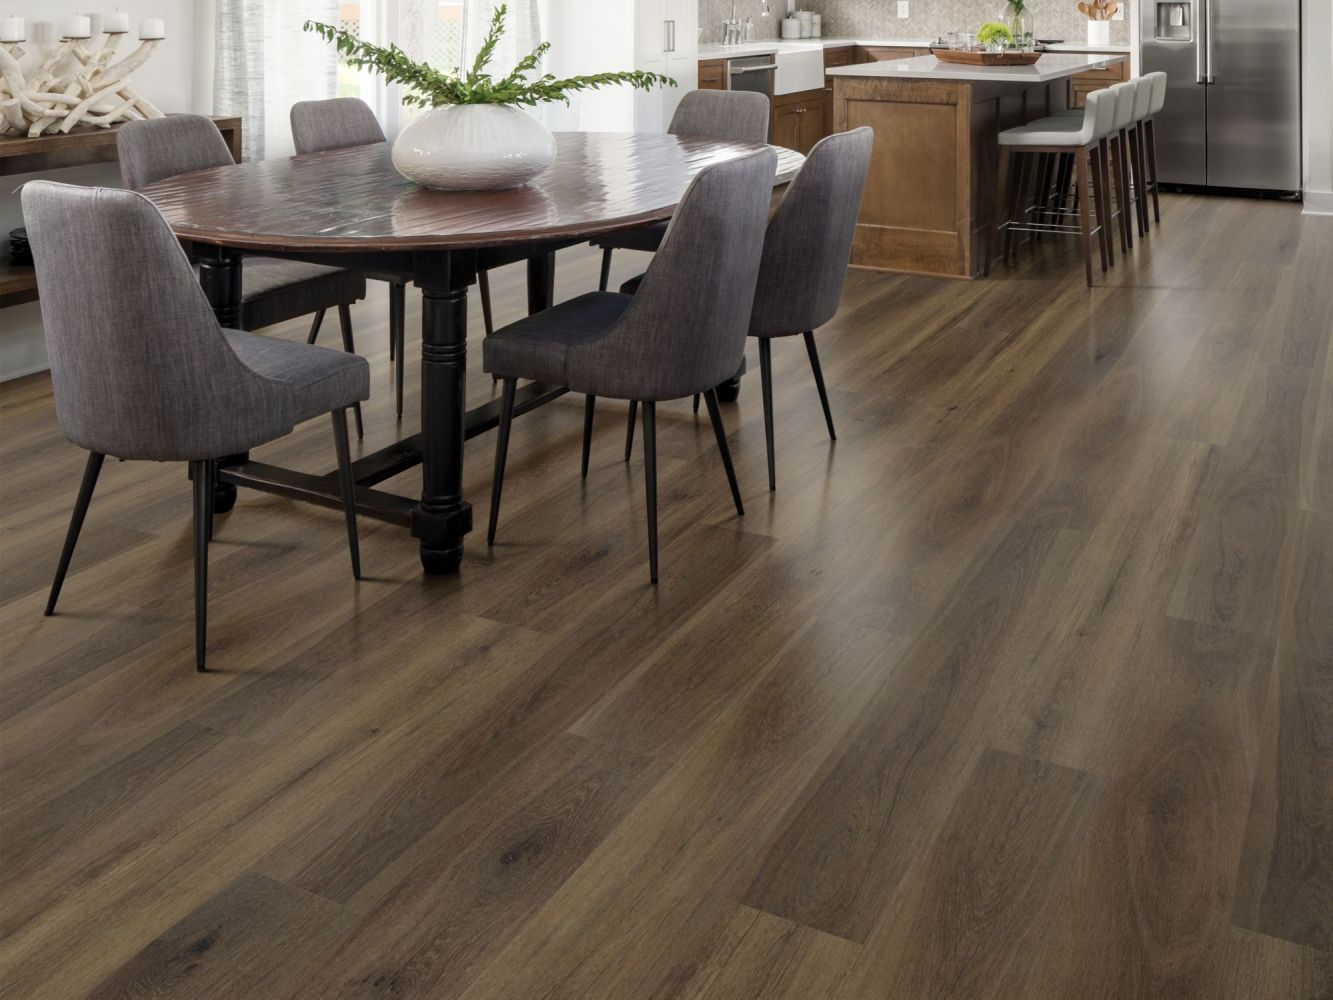 Shaw Floors SFA Adventure XL Hd+accent Tuscan Road 07074_700SA